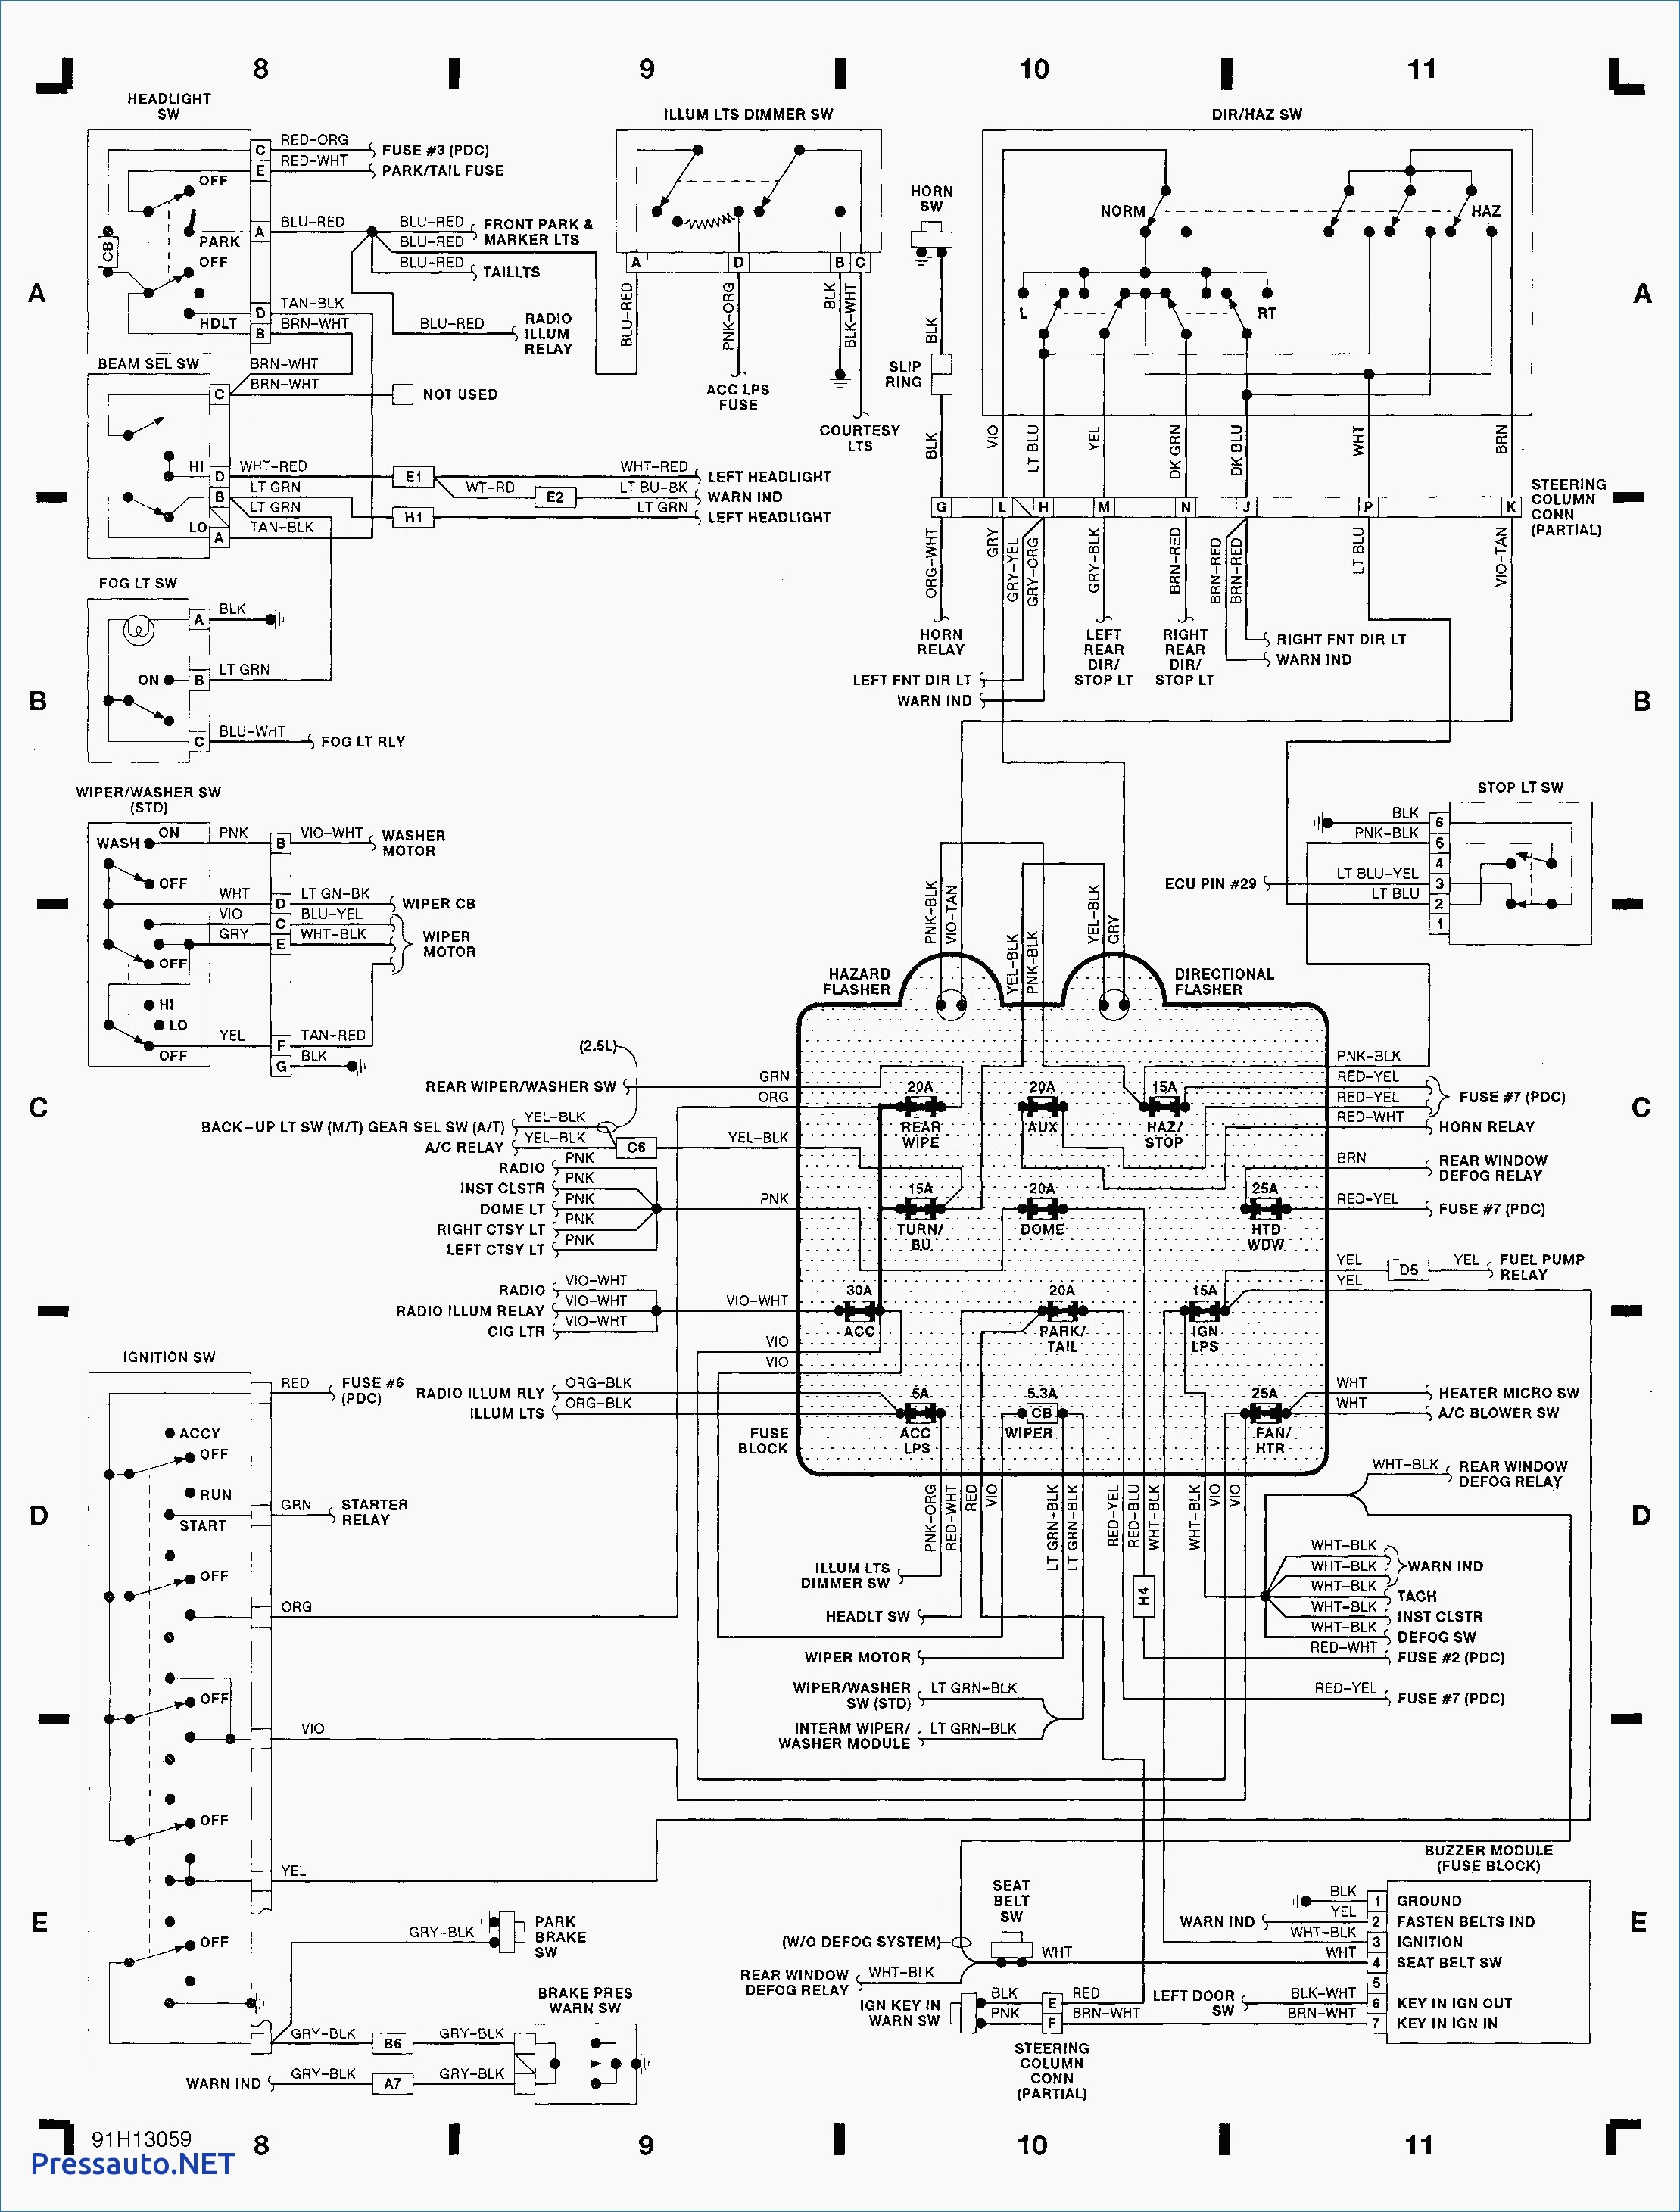 Jeep Wrangler 4 Pin Wiring Harness Diagram. Chevy Cavalier